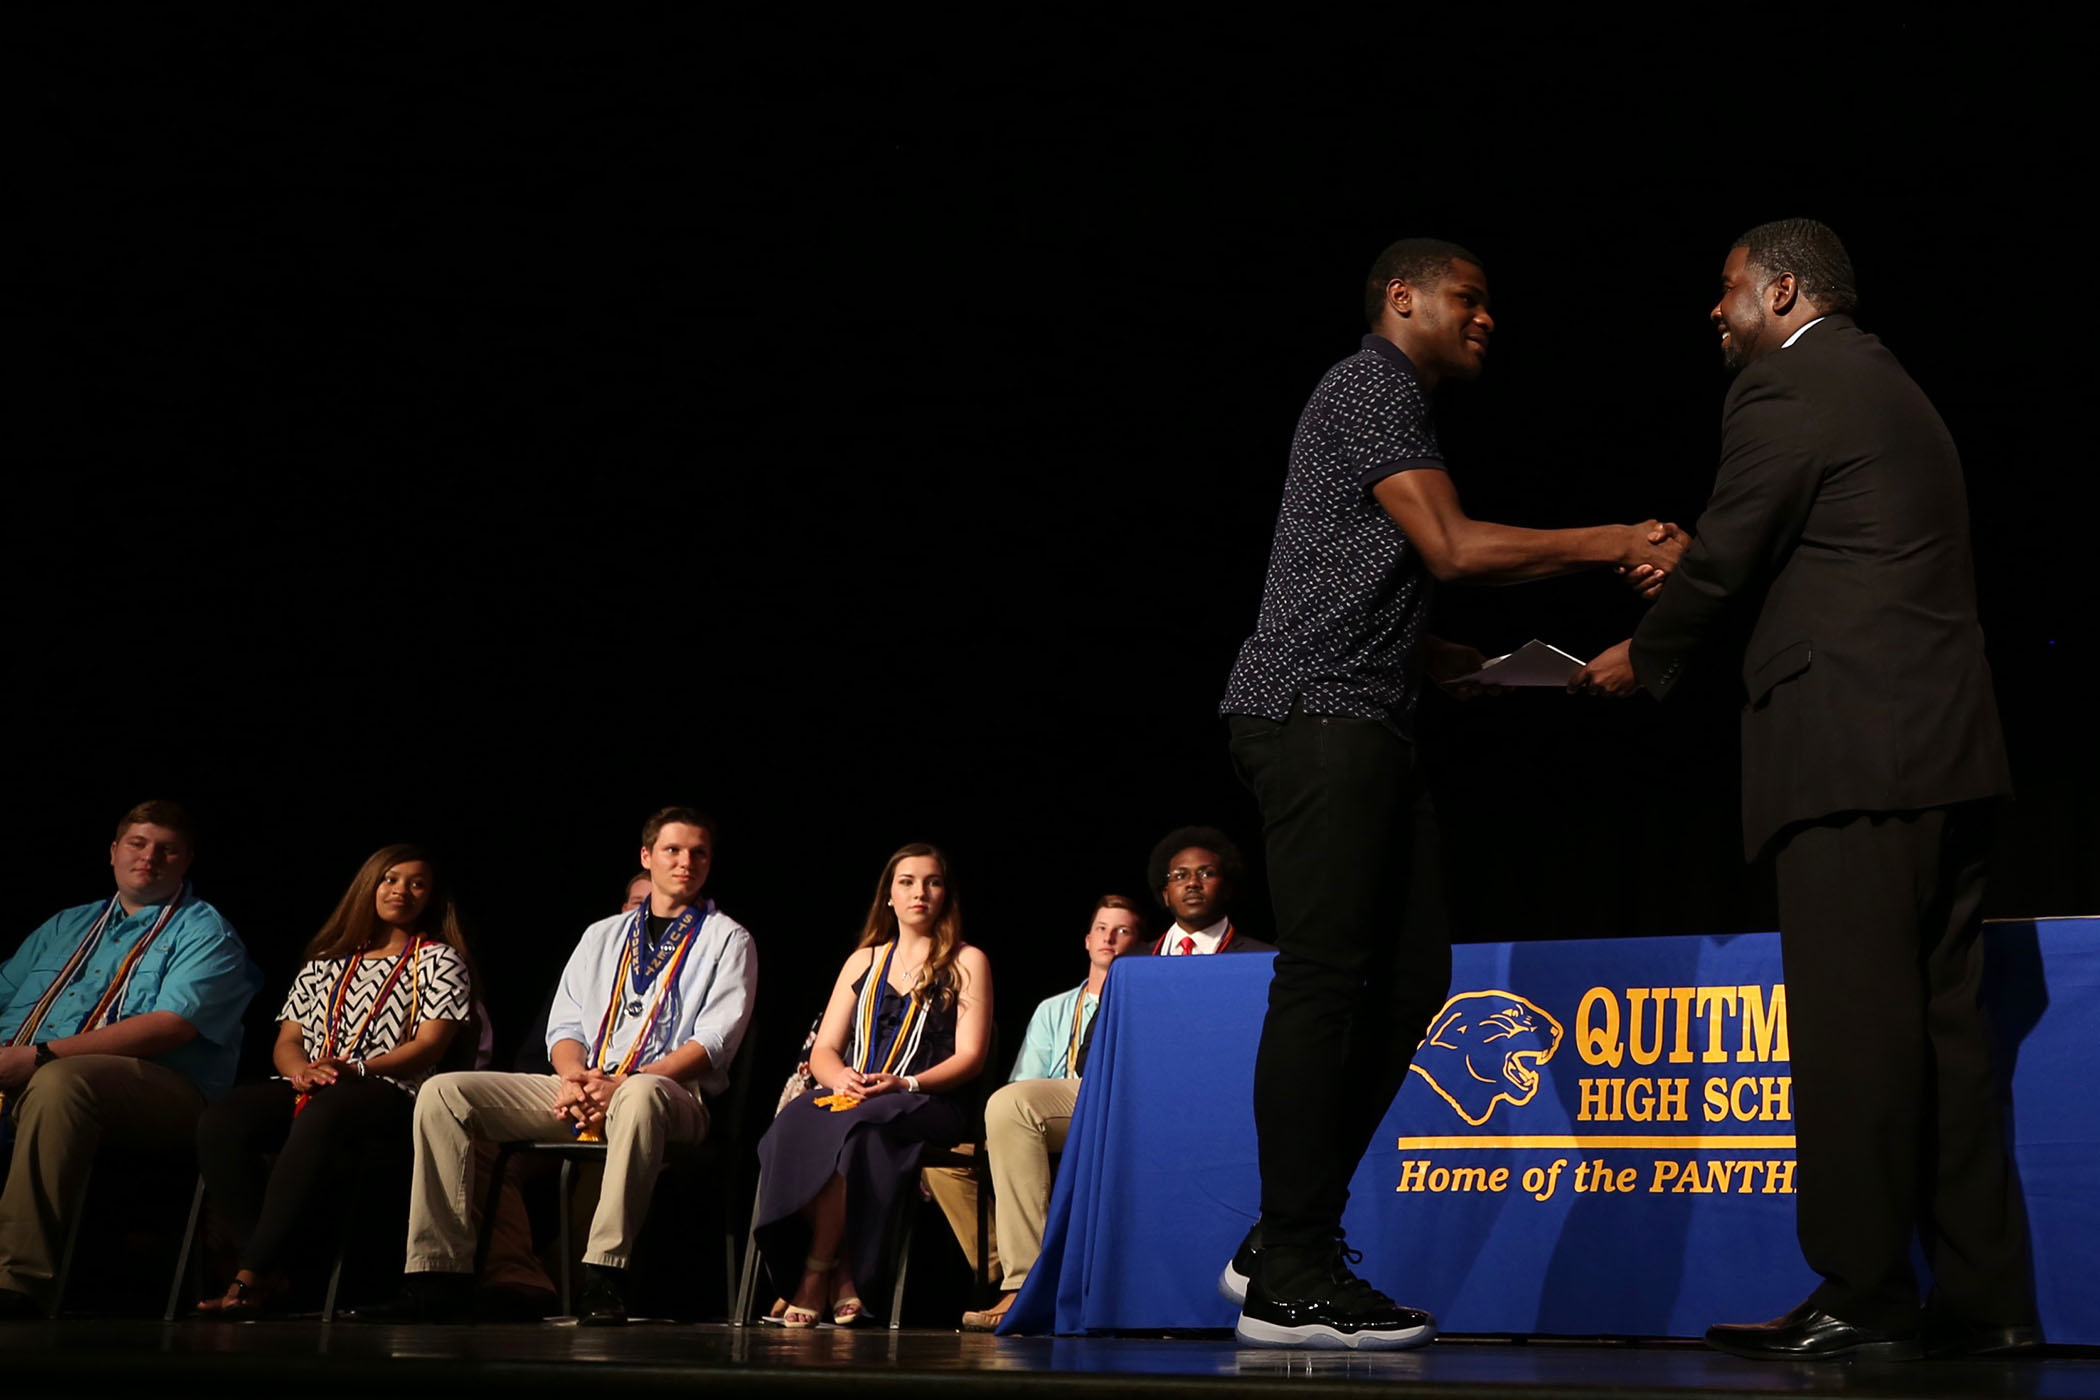 QHS senior accepts an award from Dr. Savage.